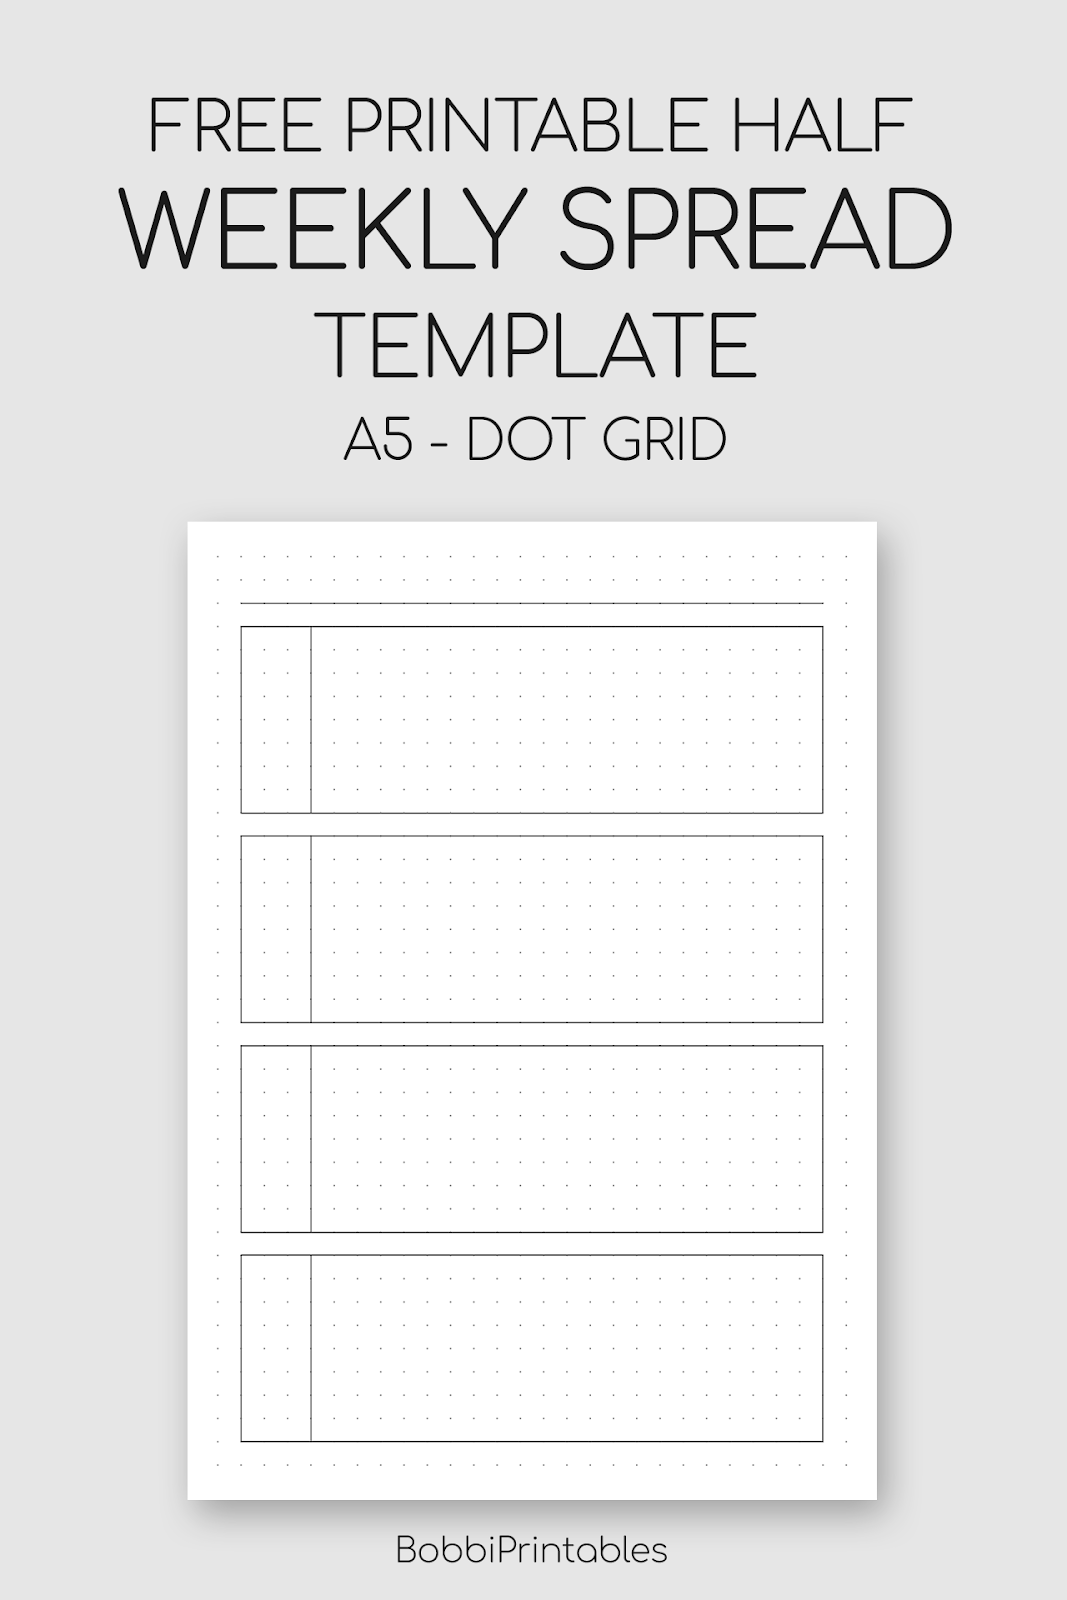 photo about A5 Dot Grid Printable titled Printable Weekly Distribute Template (50 % Unfold)